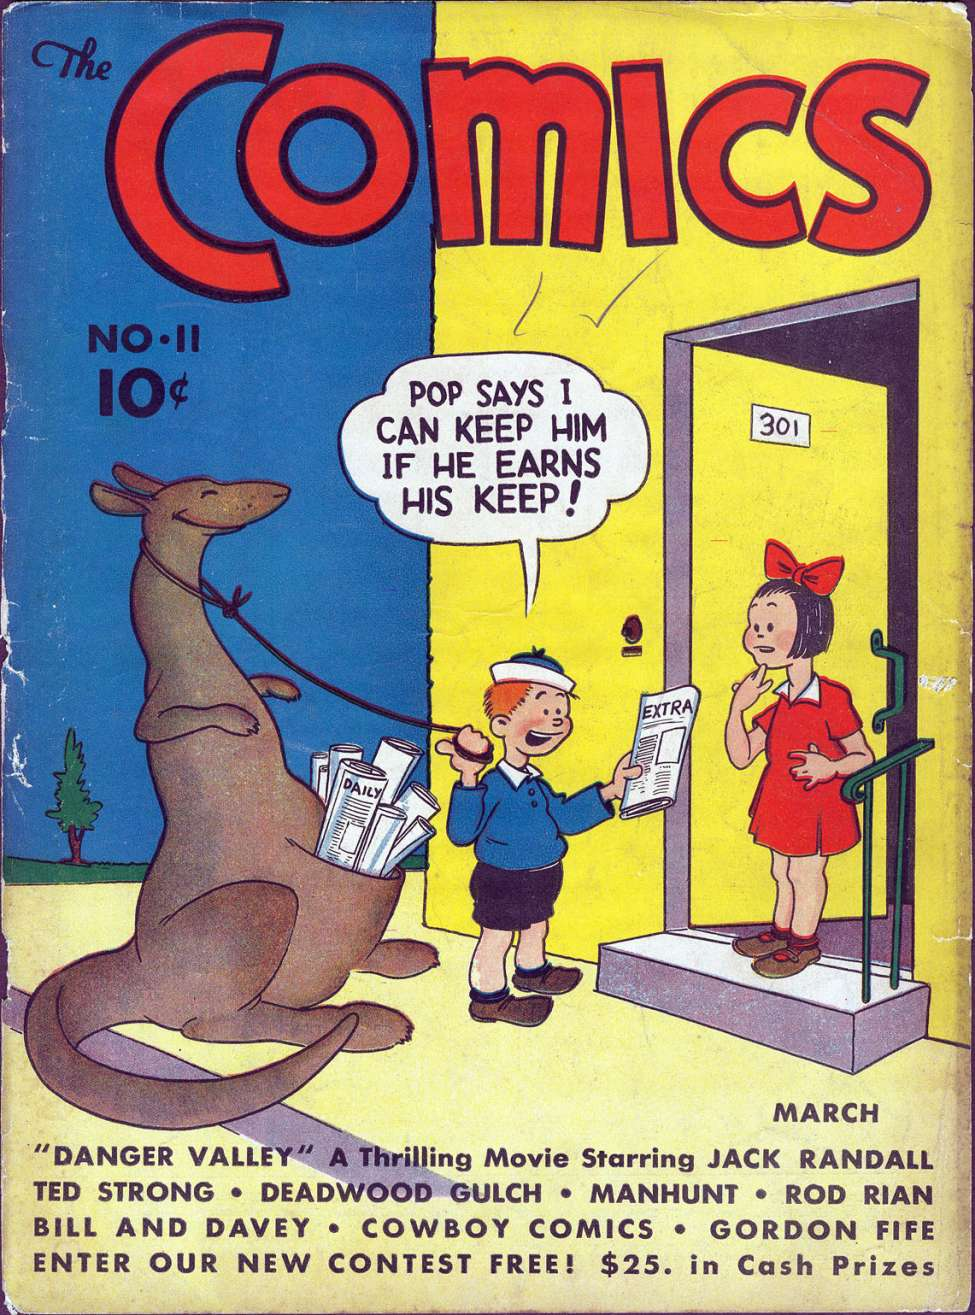 Comic Book Cover For The Comics #11